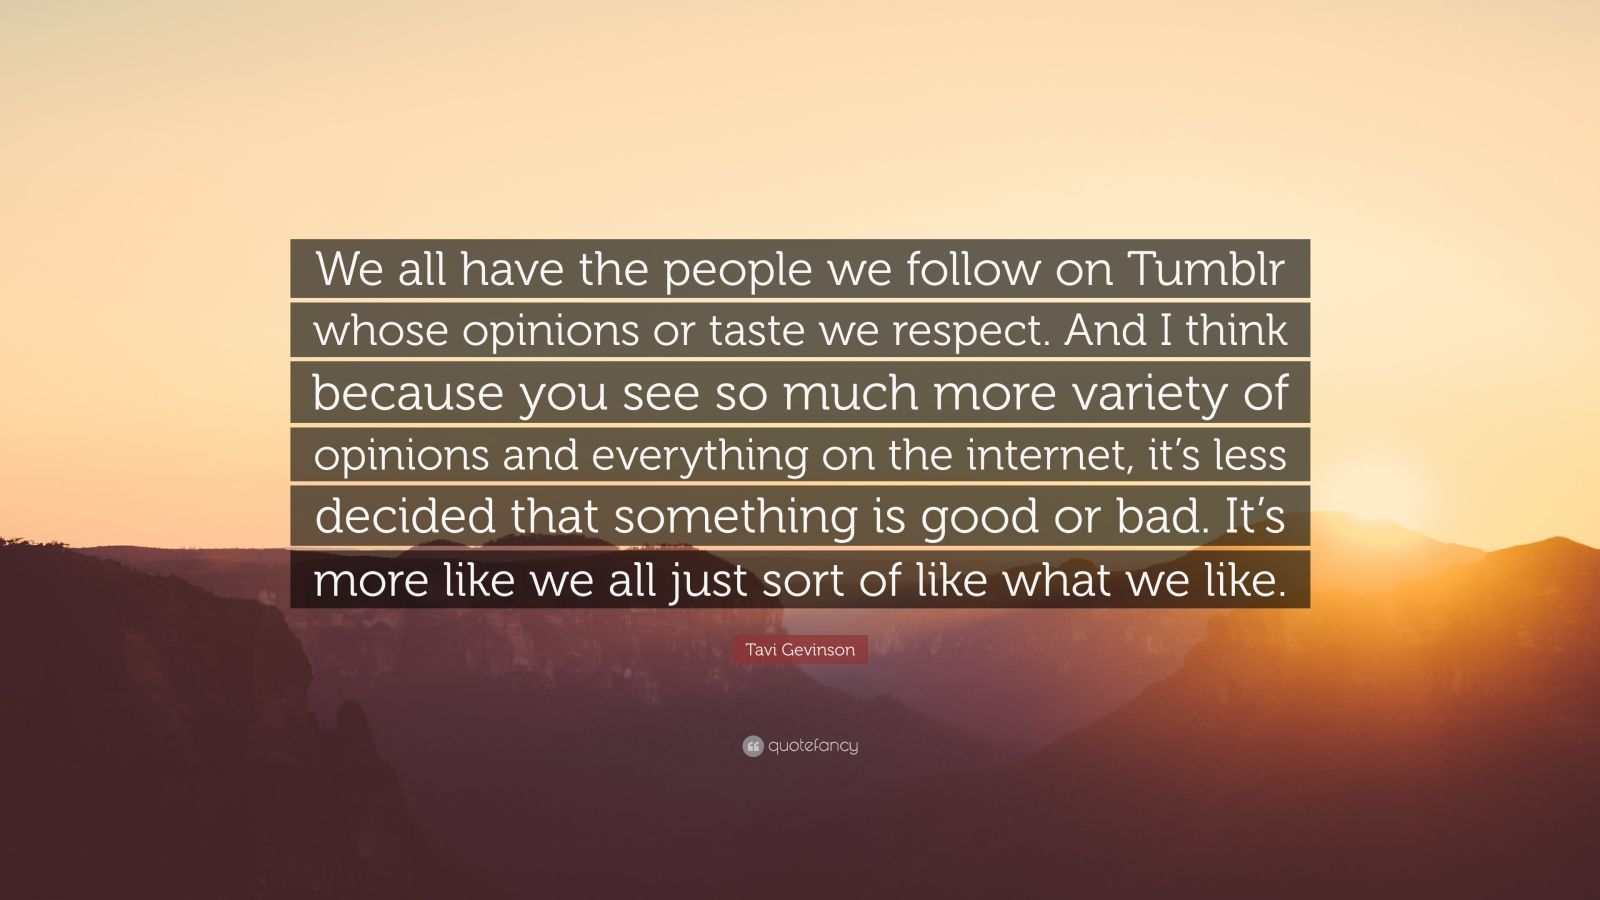 """Tavi Gevinson Quote: """"We all have the people we follow on Tumblr whose opinions or taste we respect. And I think because you see so much more variety of opinions and everything on the internet, it's less decided that something is good or bad. It's more like we all just sort of like what we like."""""""